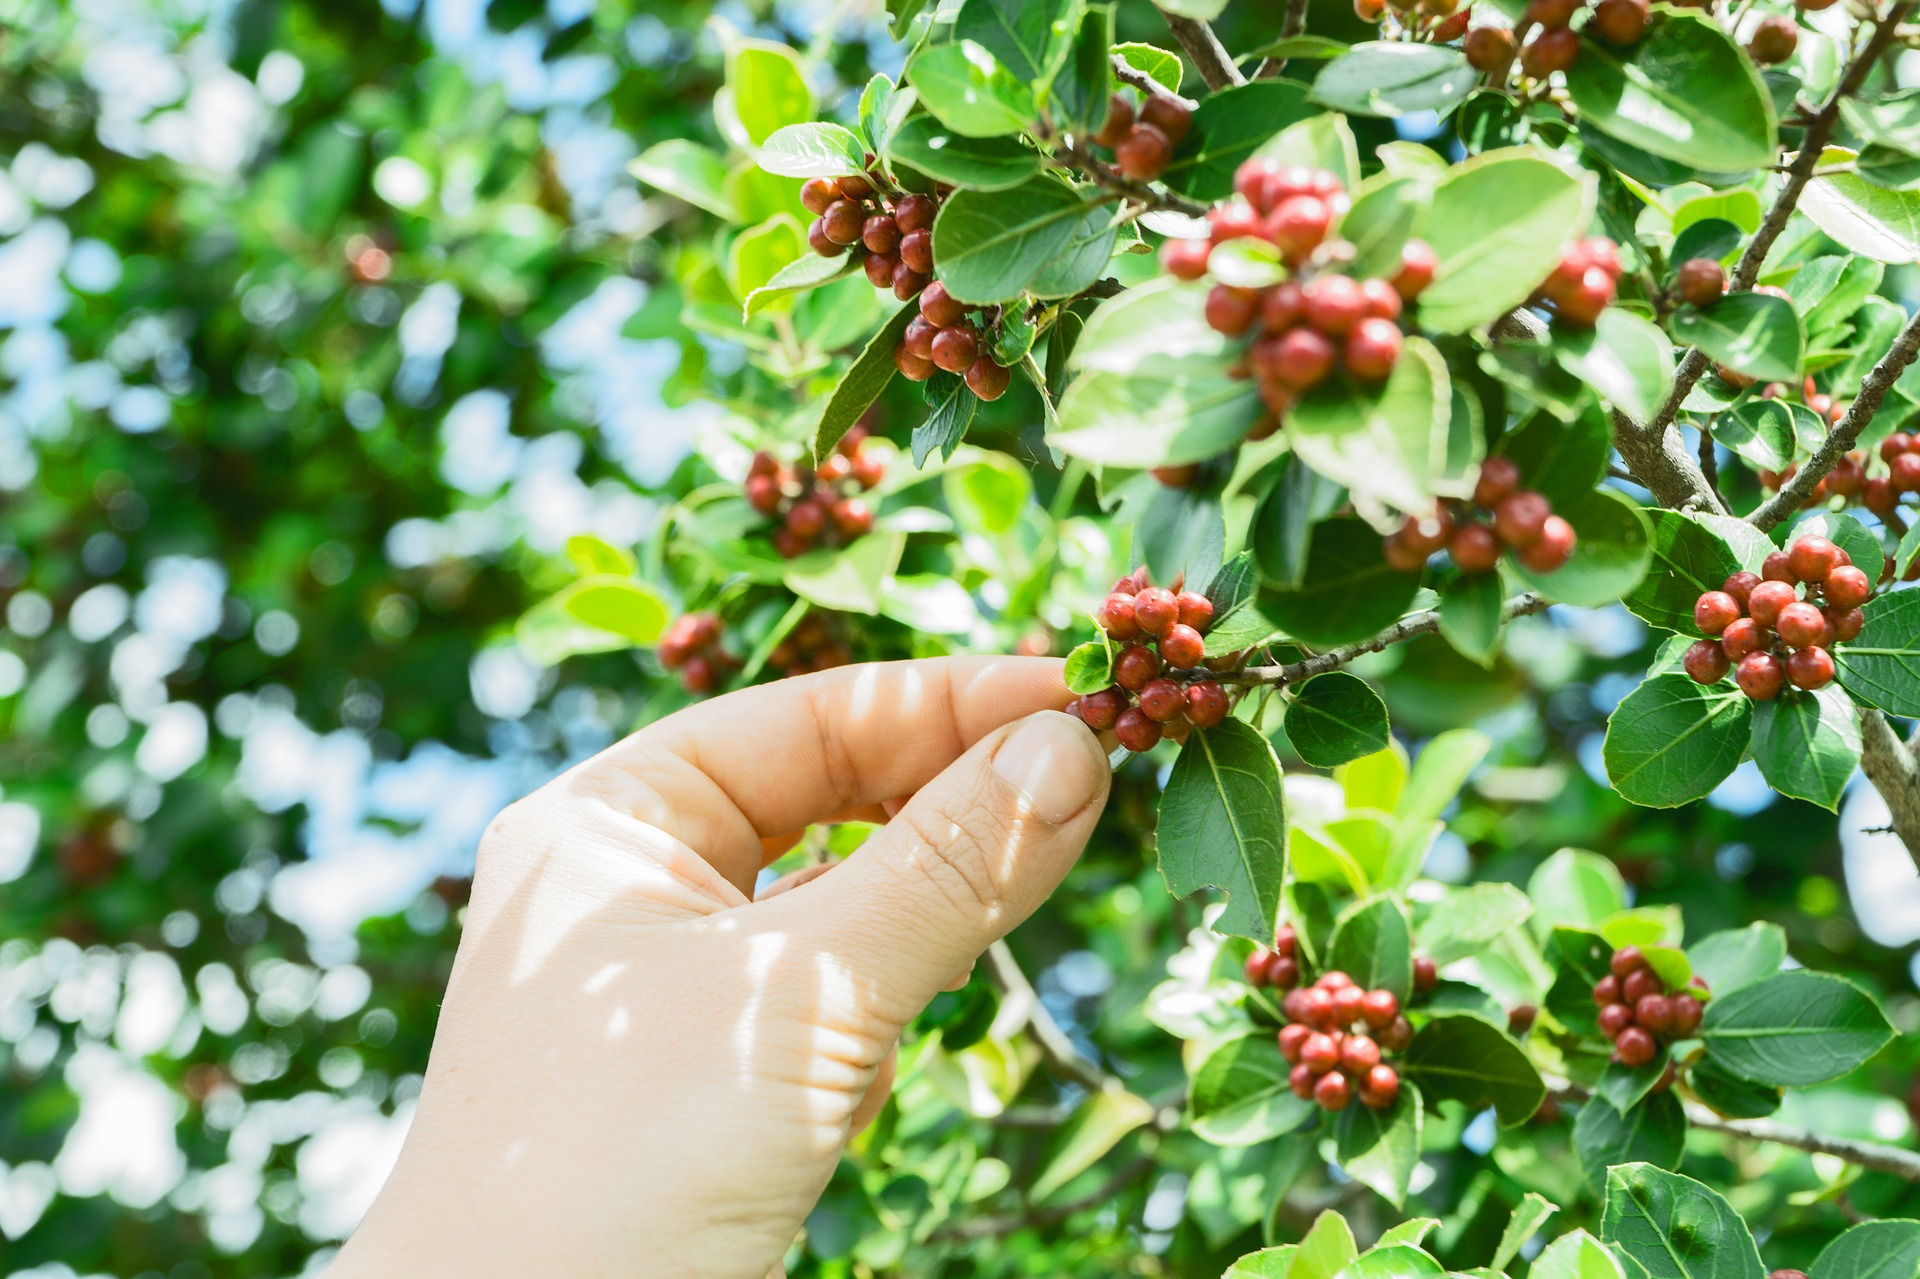 a person picking a coffee cherry from the plant